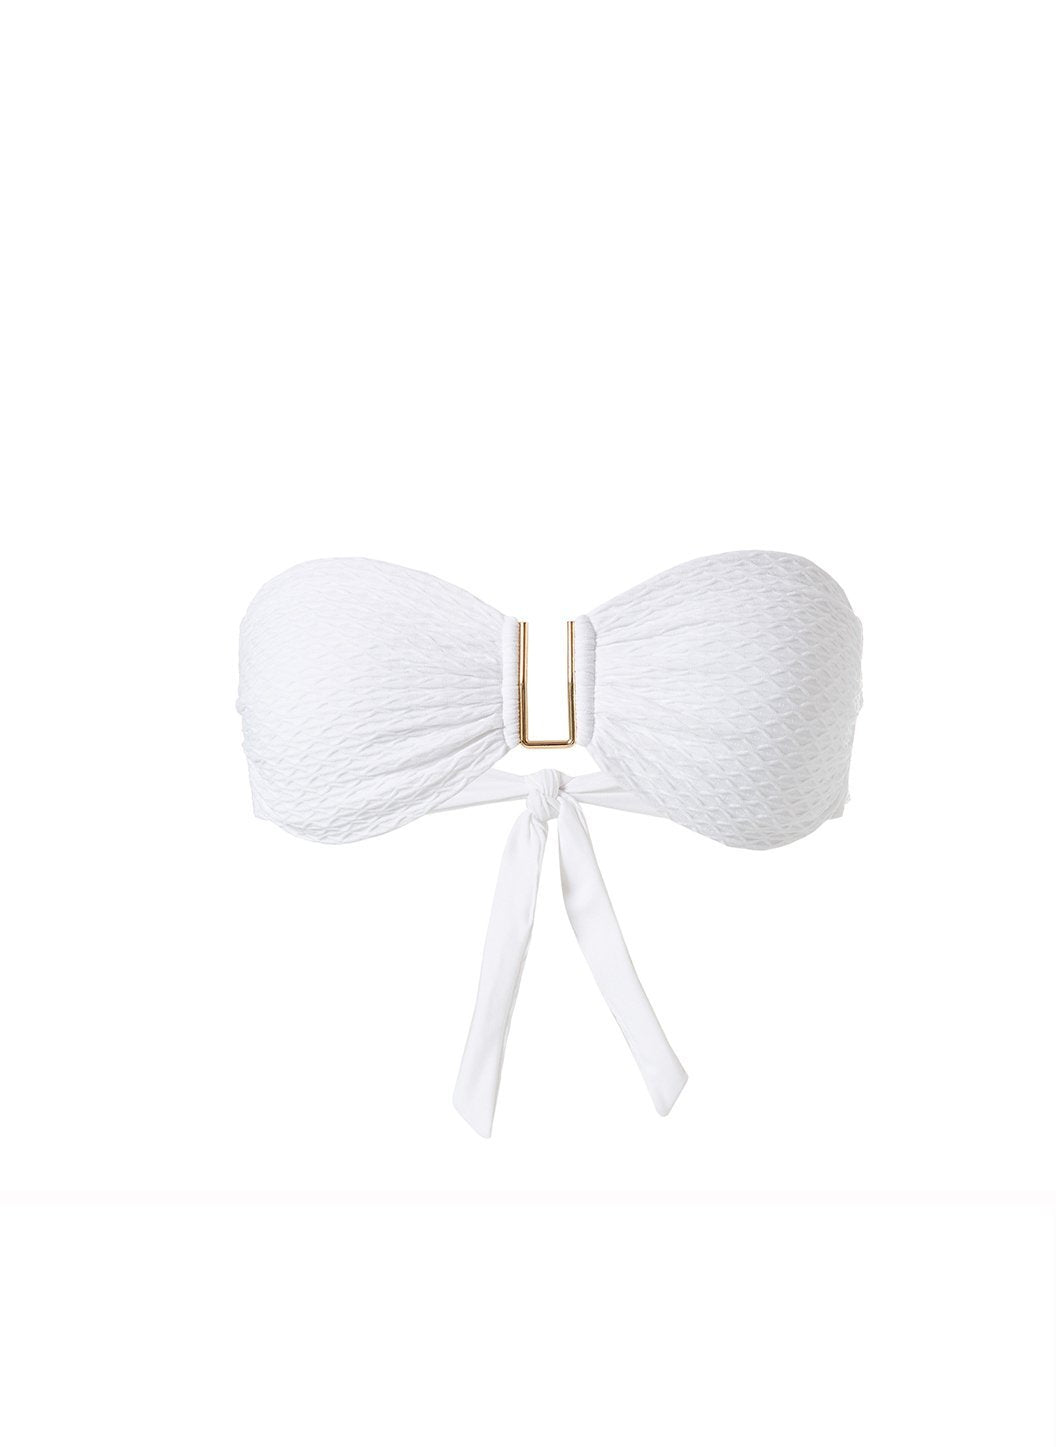 Barcelona White Waves Bikini Top